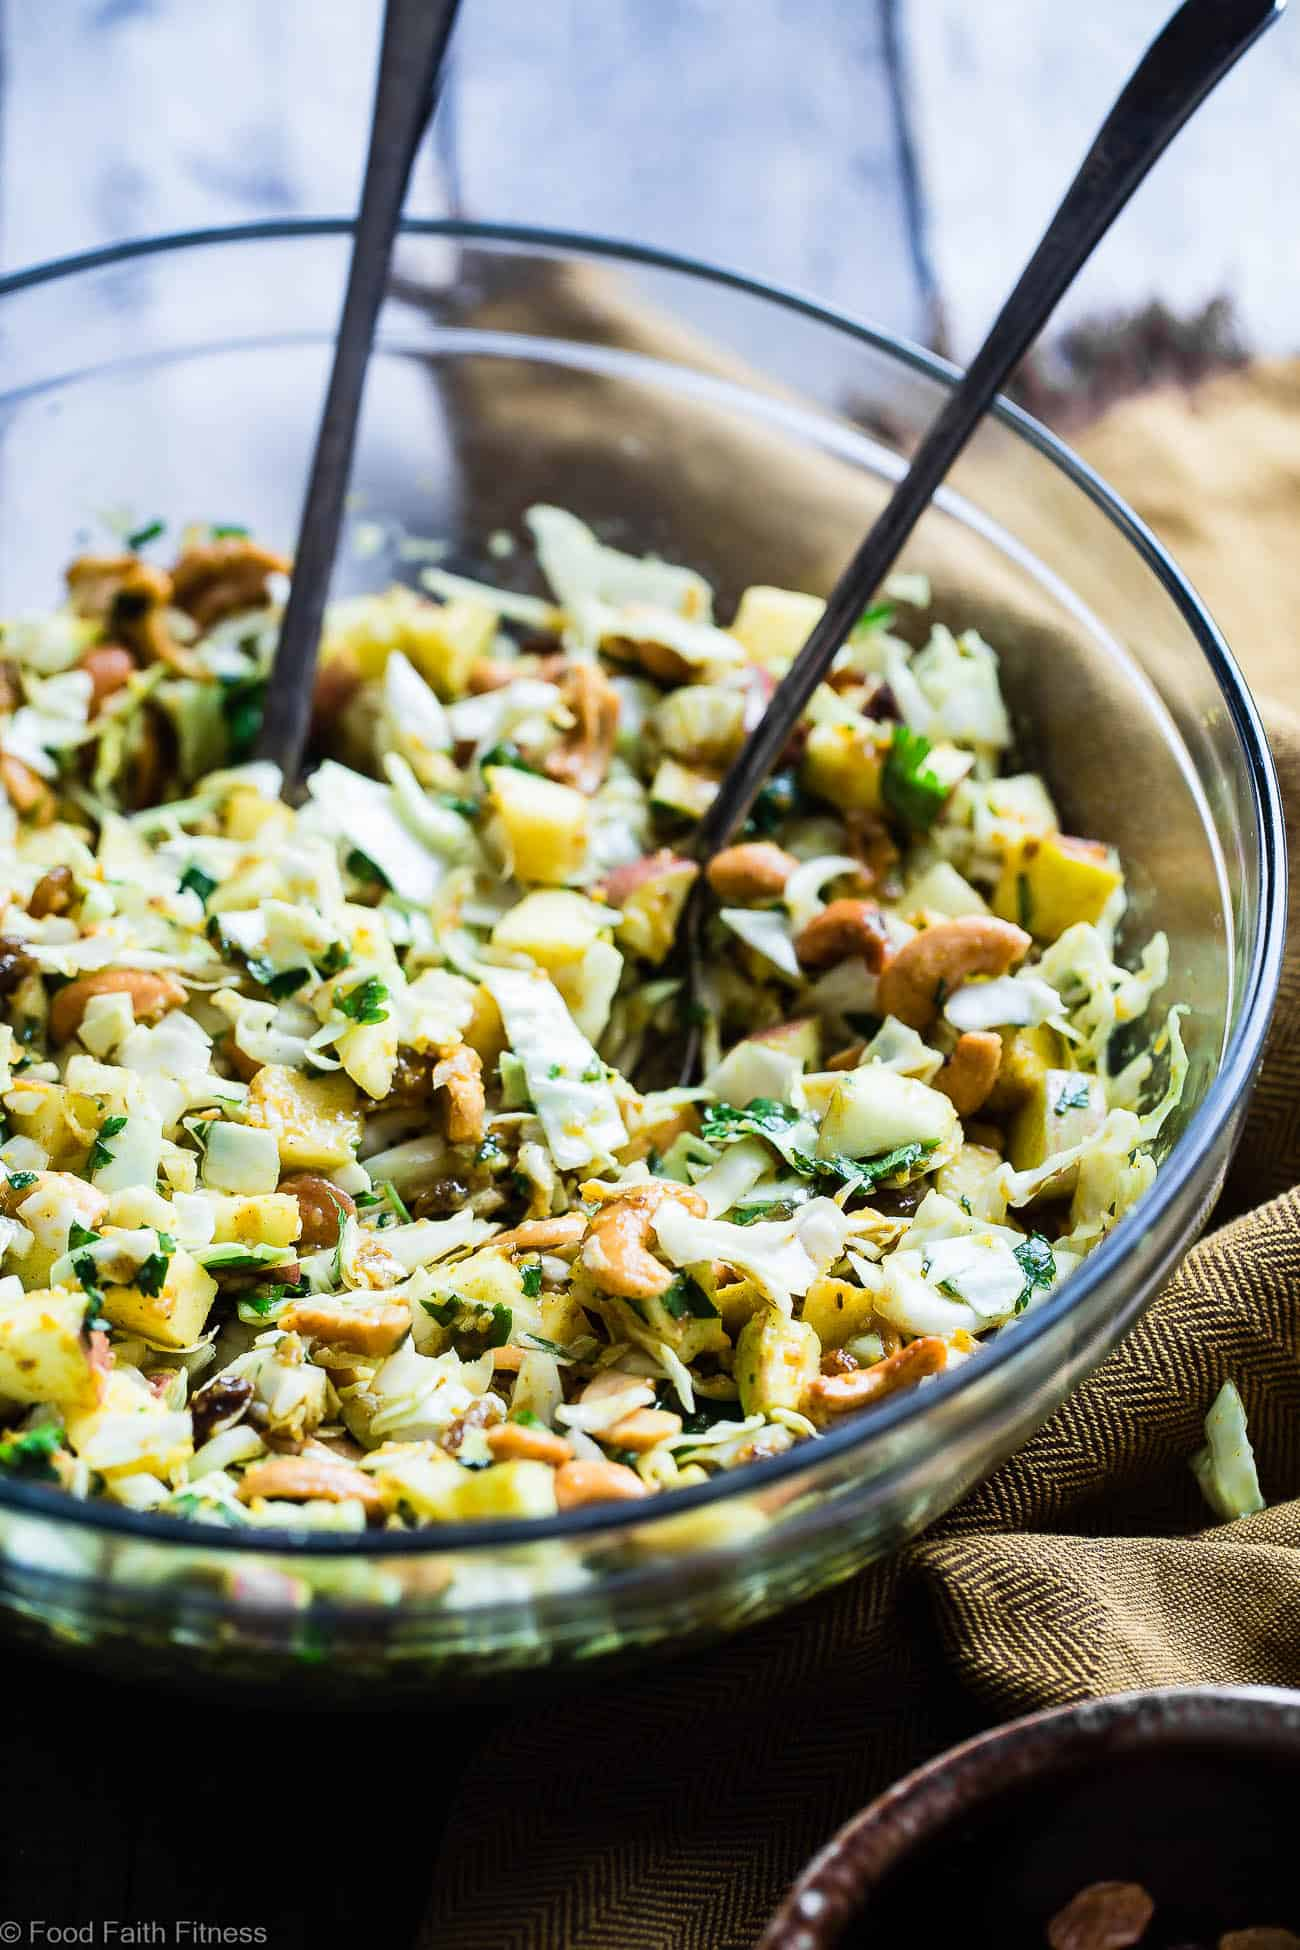 Curry Cashew Shredded Cabbage Salad with Apples - A sugar and gluten free healthy easy cabbage salad recipe that is mixed with a creamy curry dressing and crunchy cashews! A healthy, paleo and whole30 side dish that everyone will love! | Foodfaithfitness.com | @FoodFaithFit